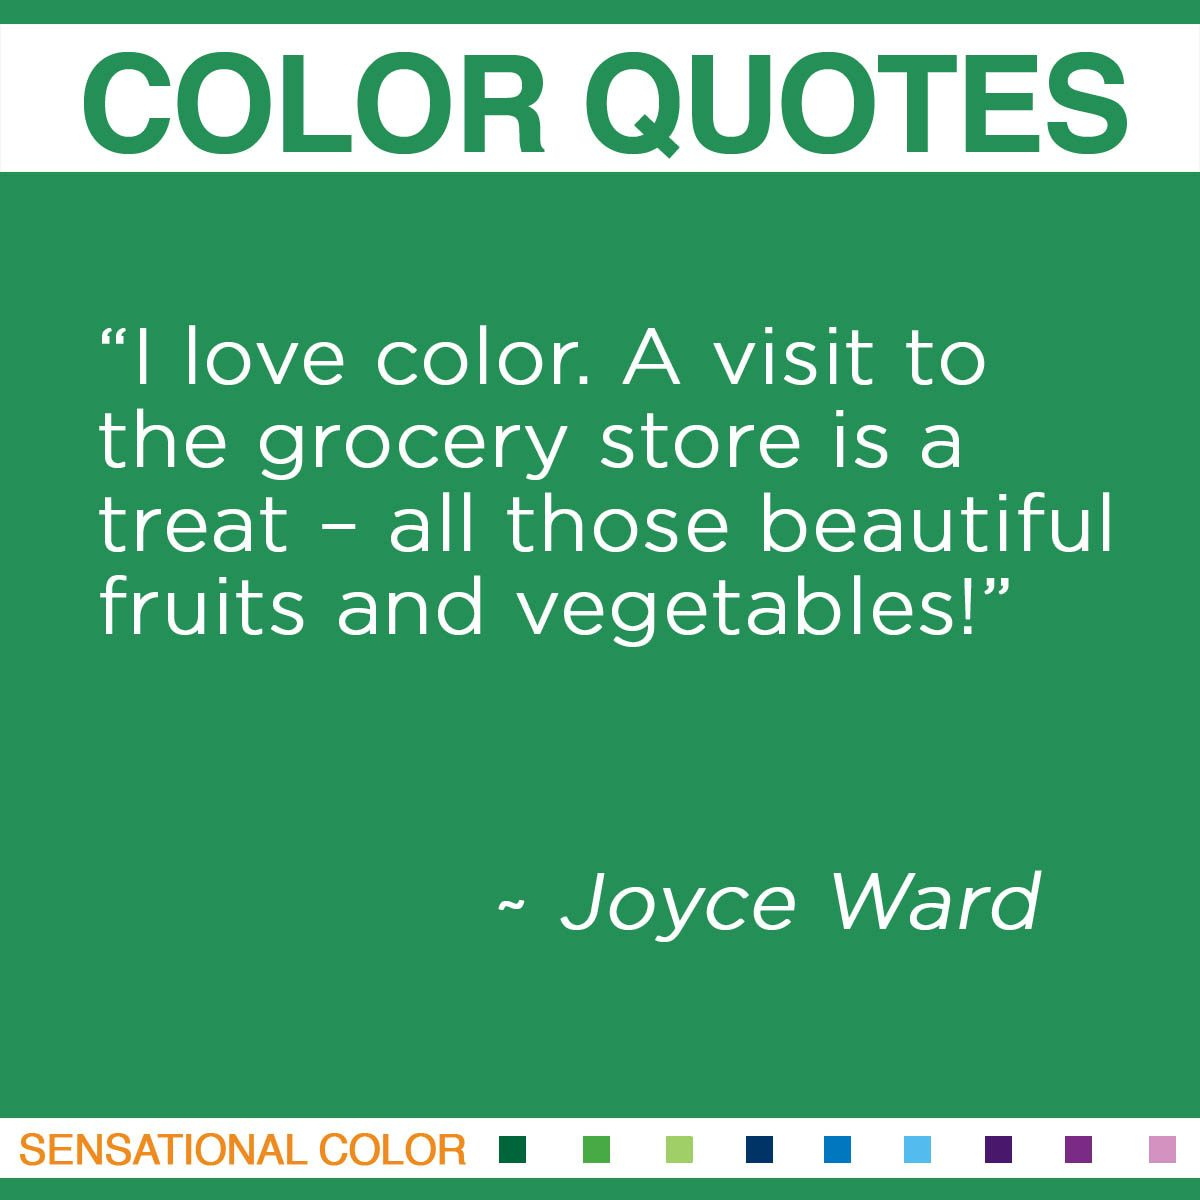 """I love color. A visit to the grocery store is a treat – all those beautiful fruits and vegetables!"" - Joyce Ward"